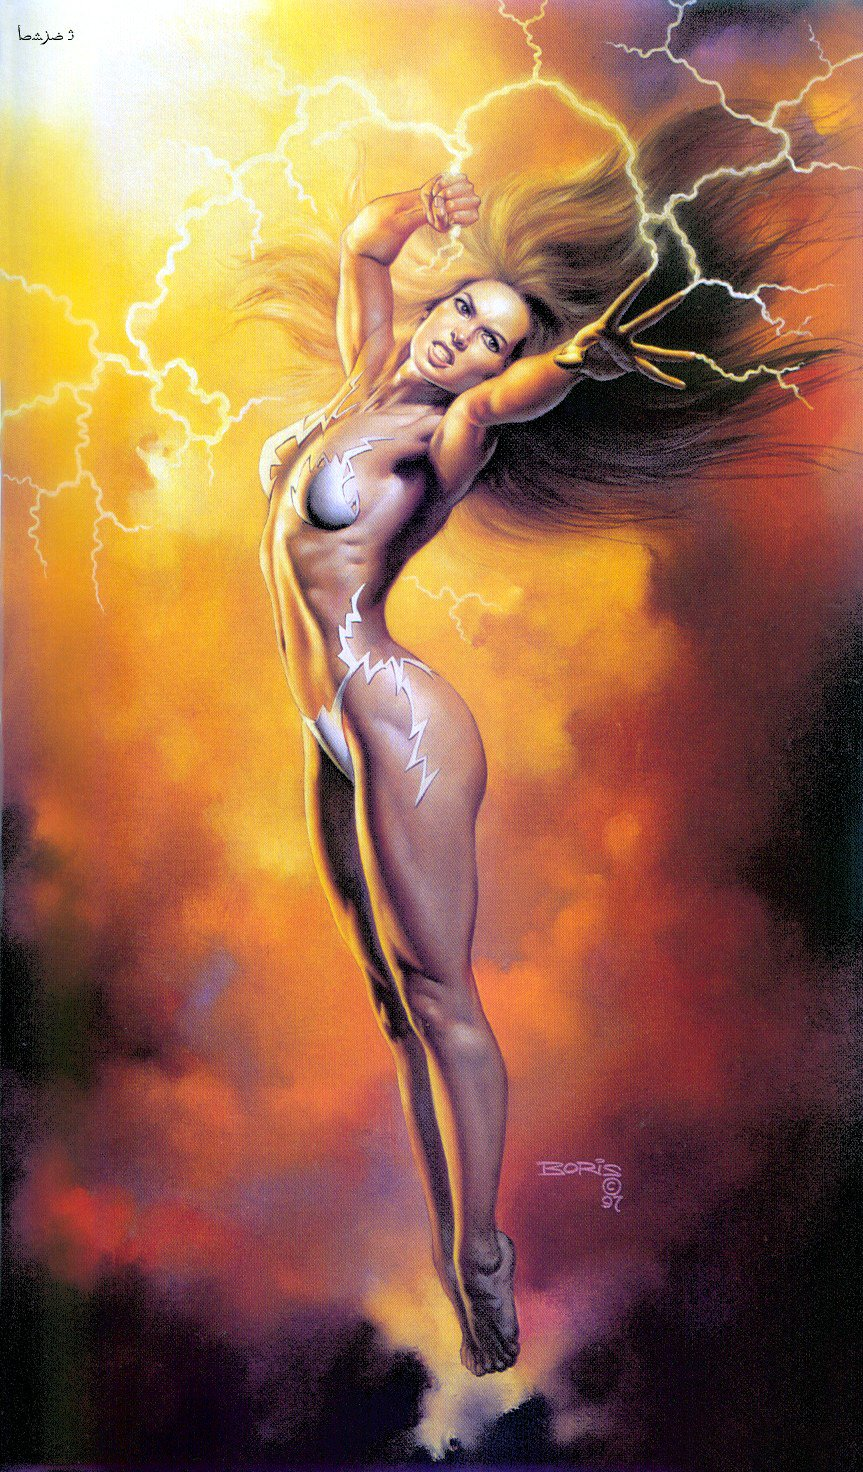 bv97_025a_ofn_CQ_Mistress_of_the_Storm.jpg